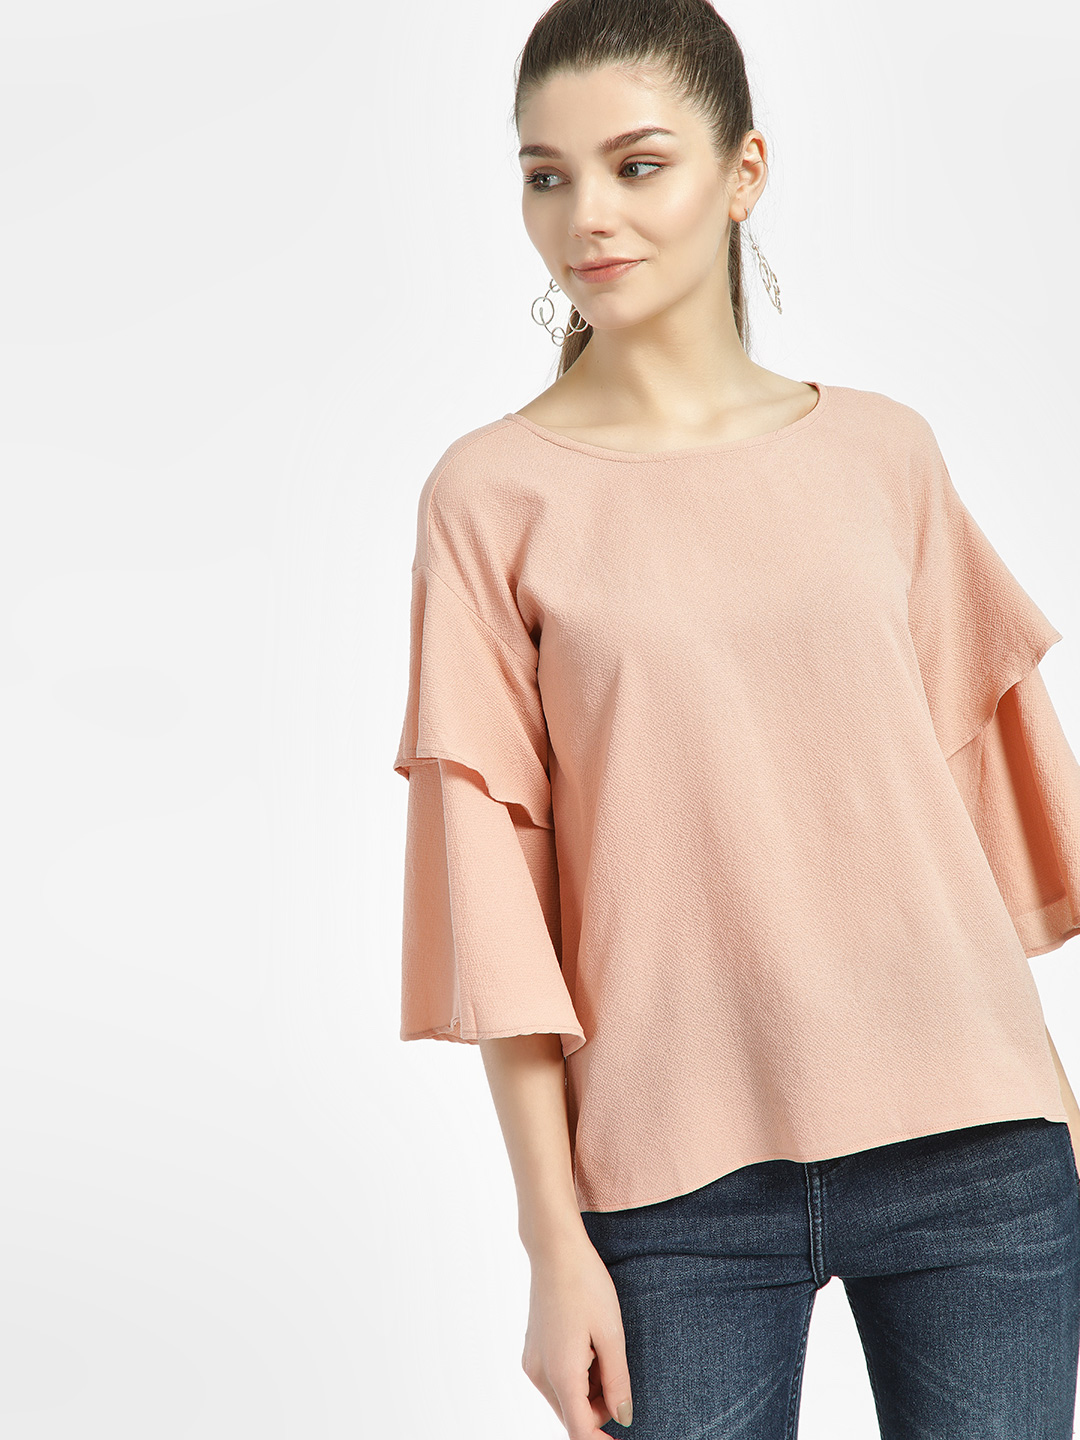 Lee Cooper Pink Tier Long Sleeve Blouse 1